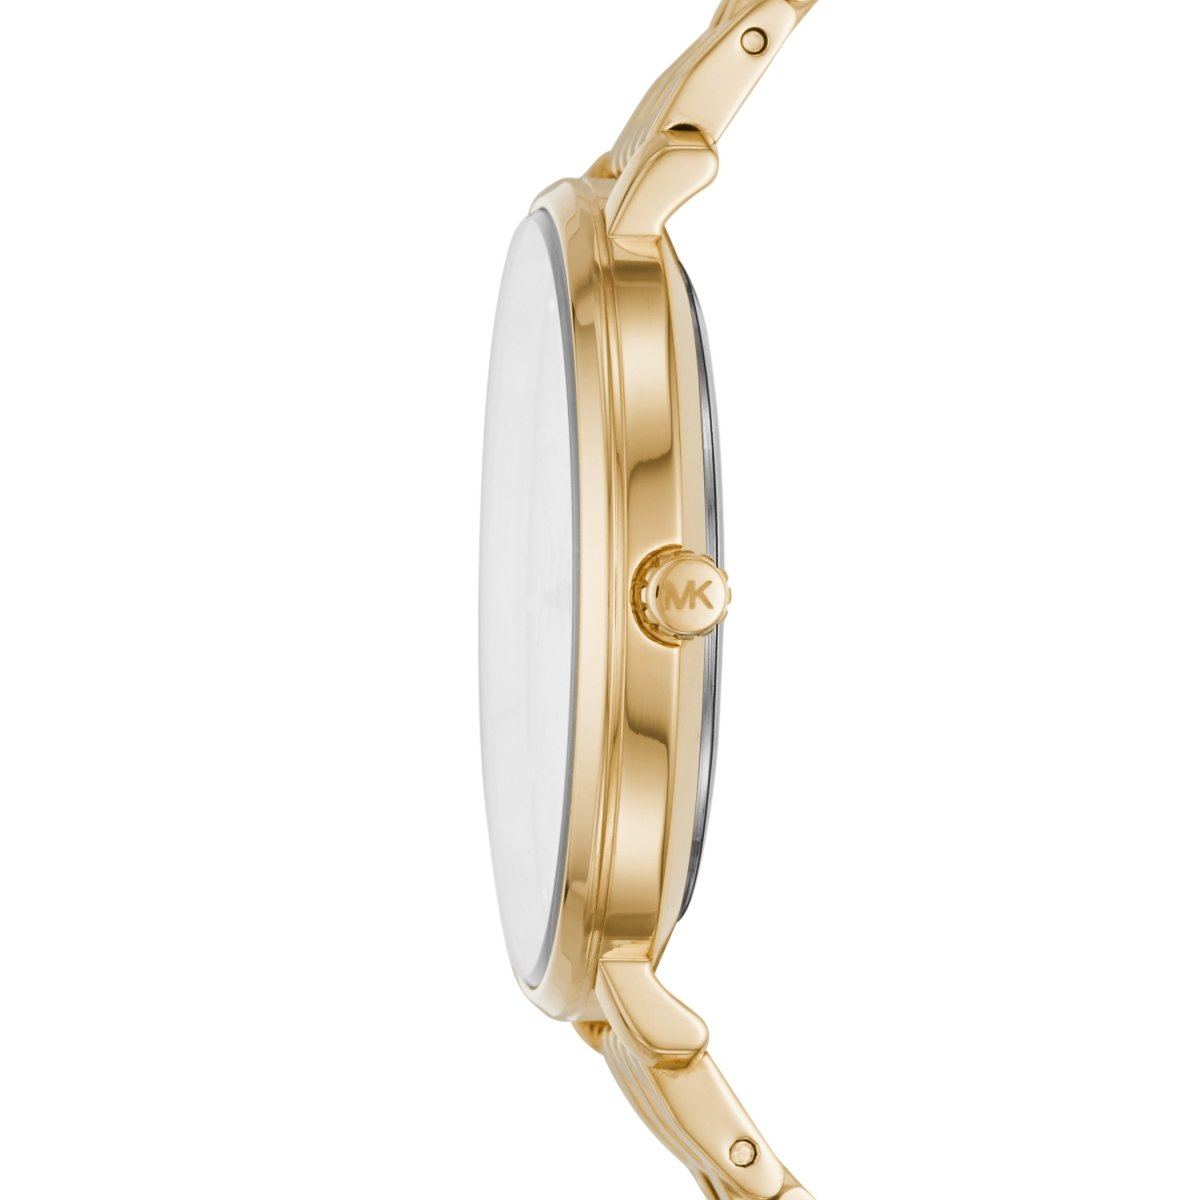 Michael Kors MK3898 Pyper Crystals Gold Stainless Steel Watch - Κοσμηματοπωλείο Goldy